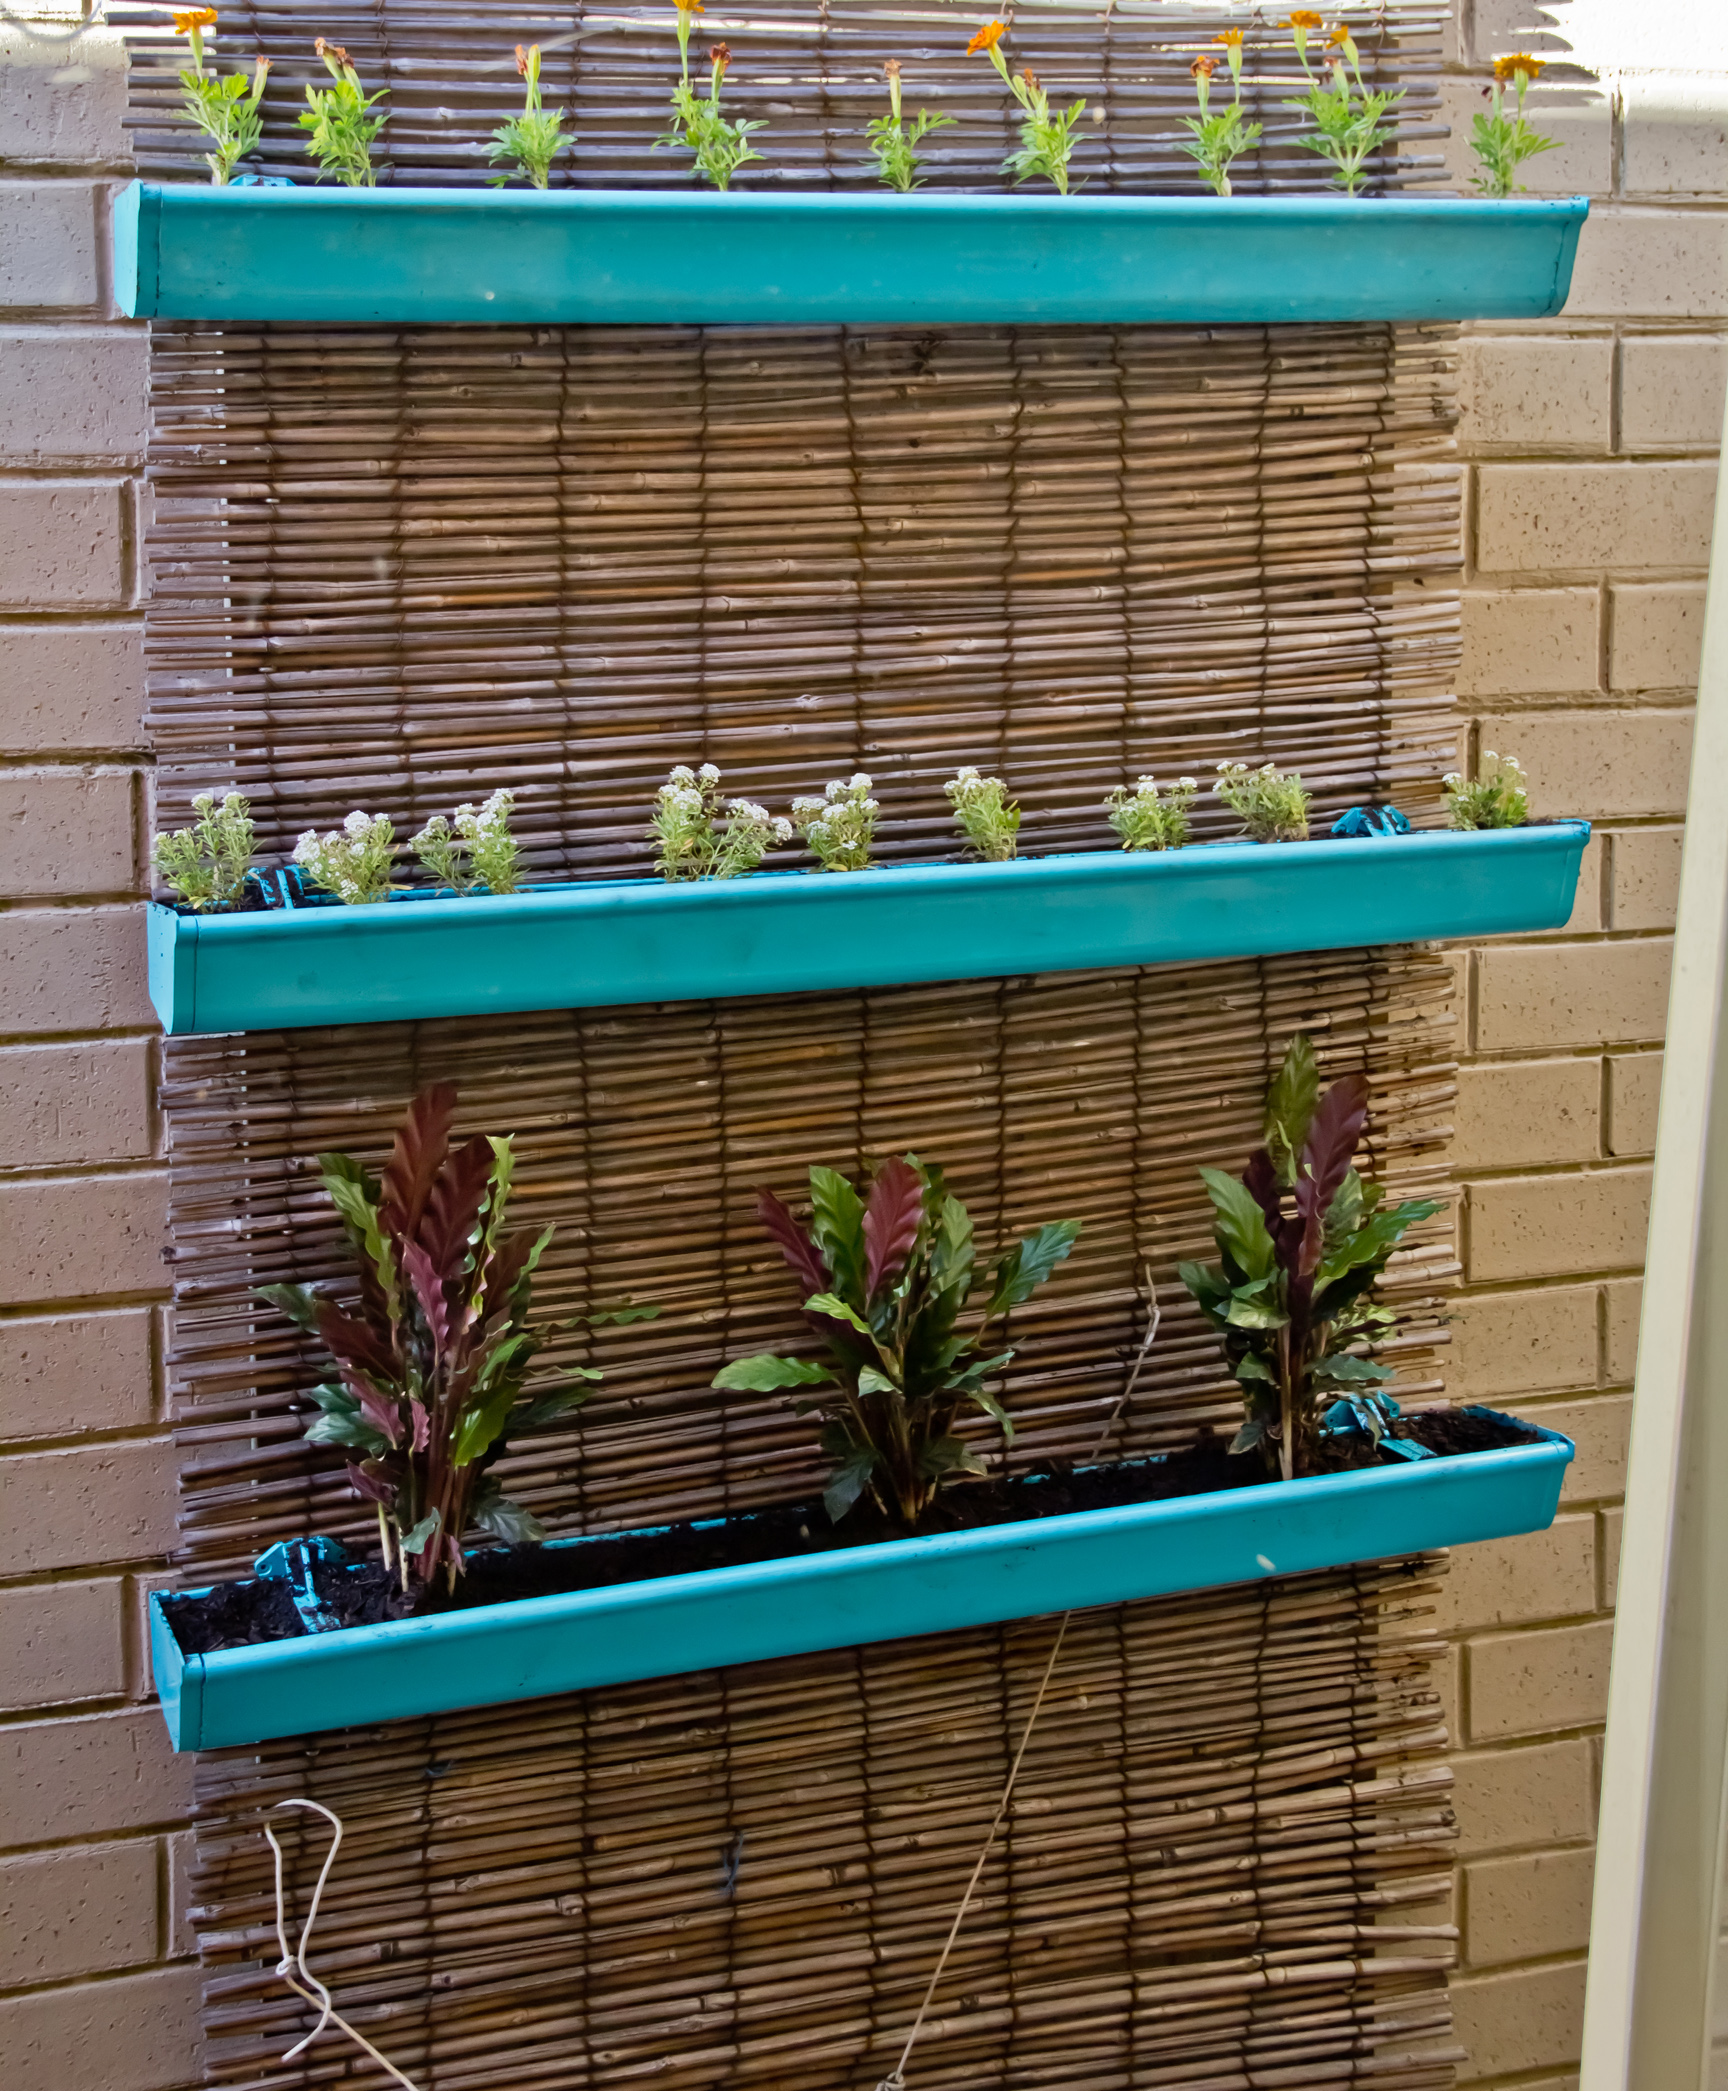 DIY Vertical Gardens (Gutters and Pallets) - What's Dan Up To?